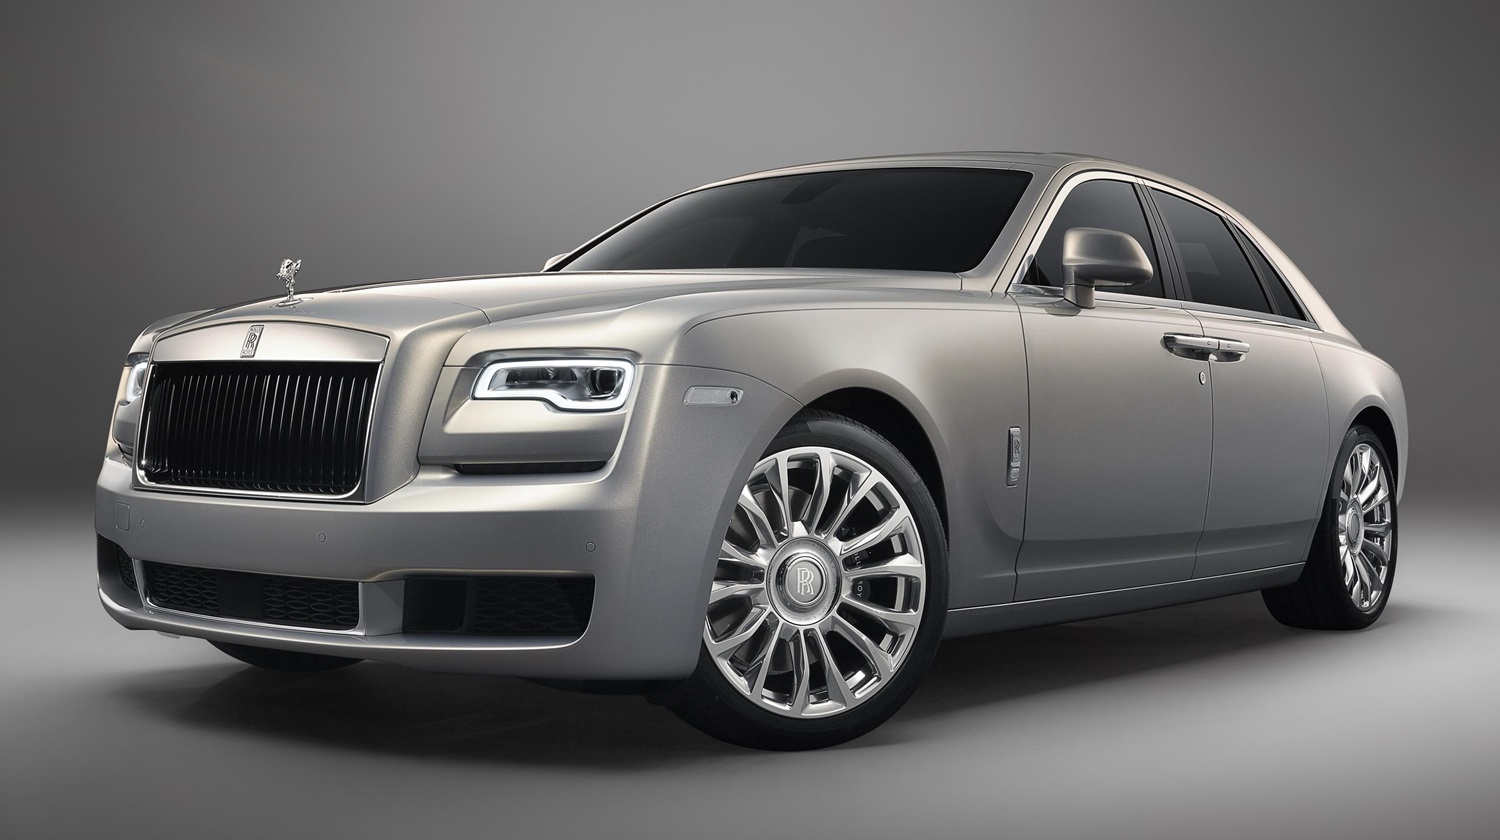 2019 Rolls Royce Silver Ghost Collection Limited Edition